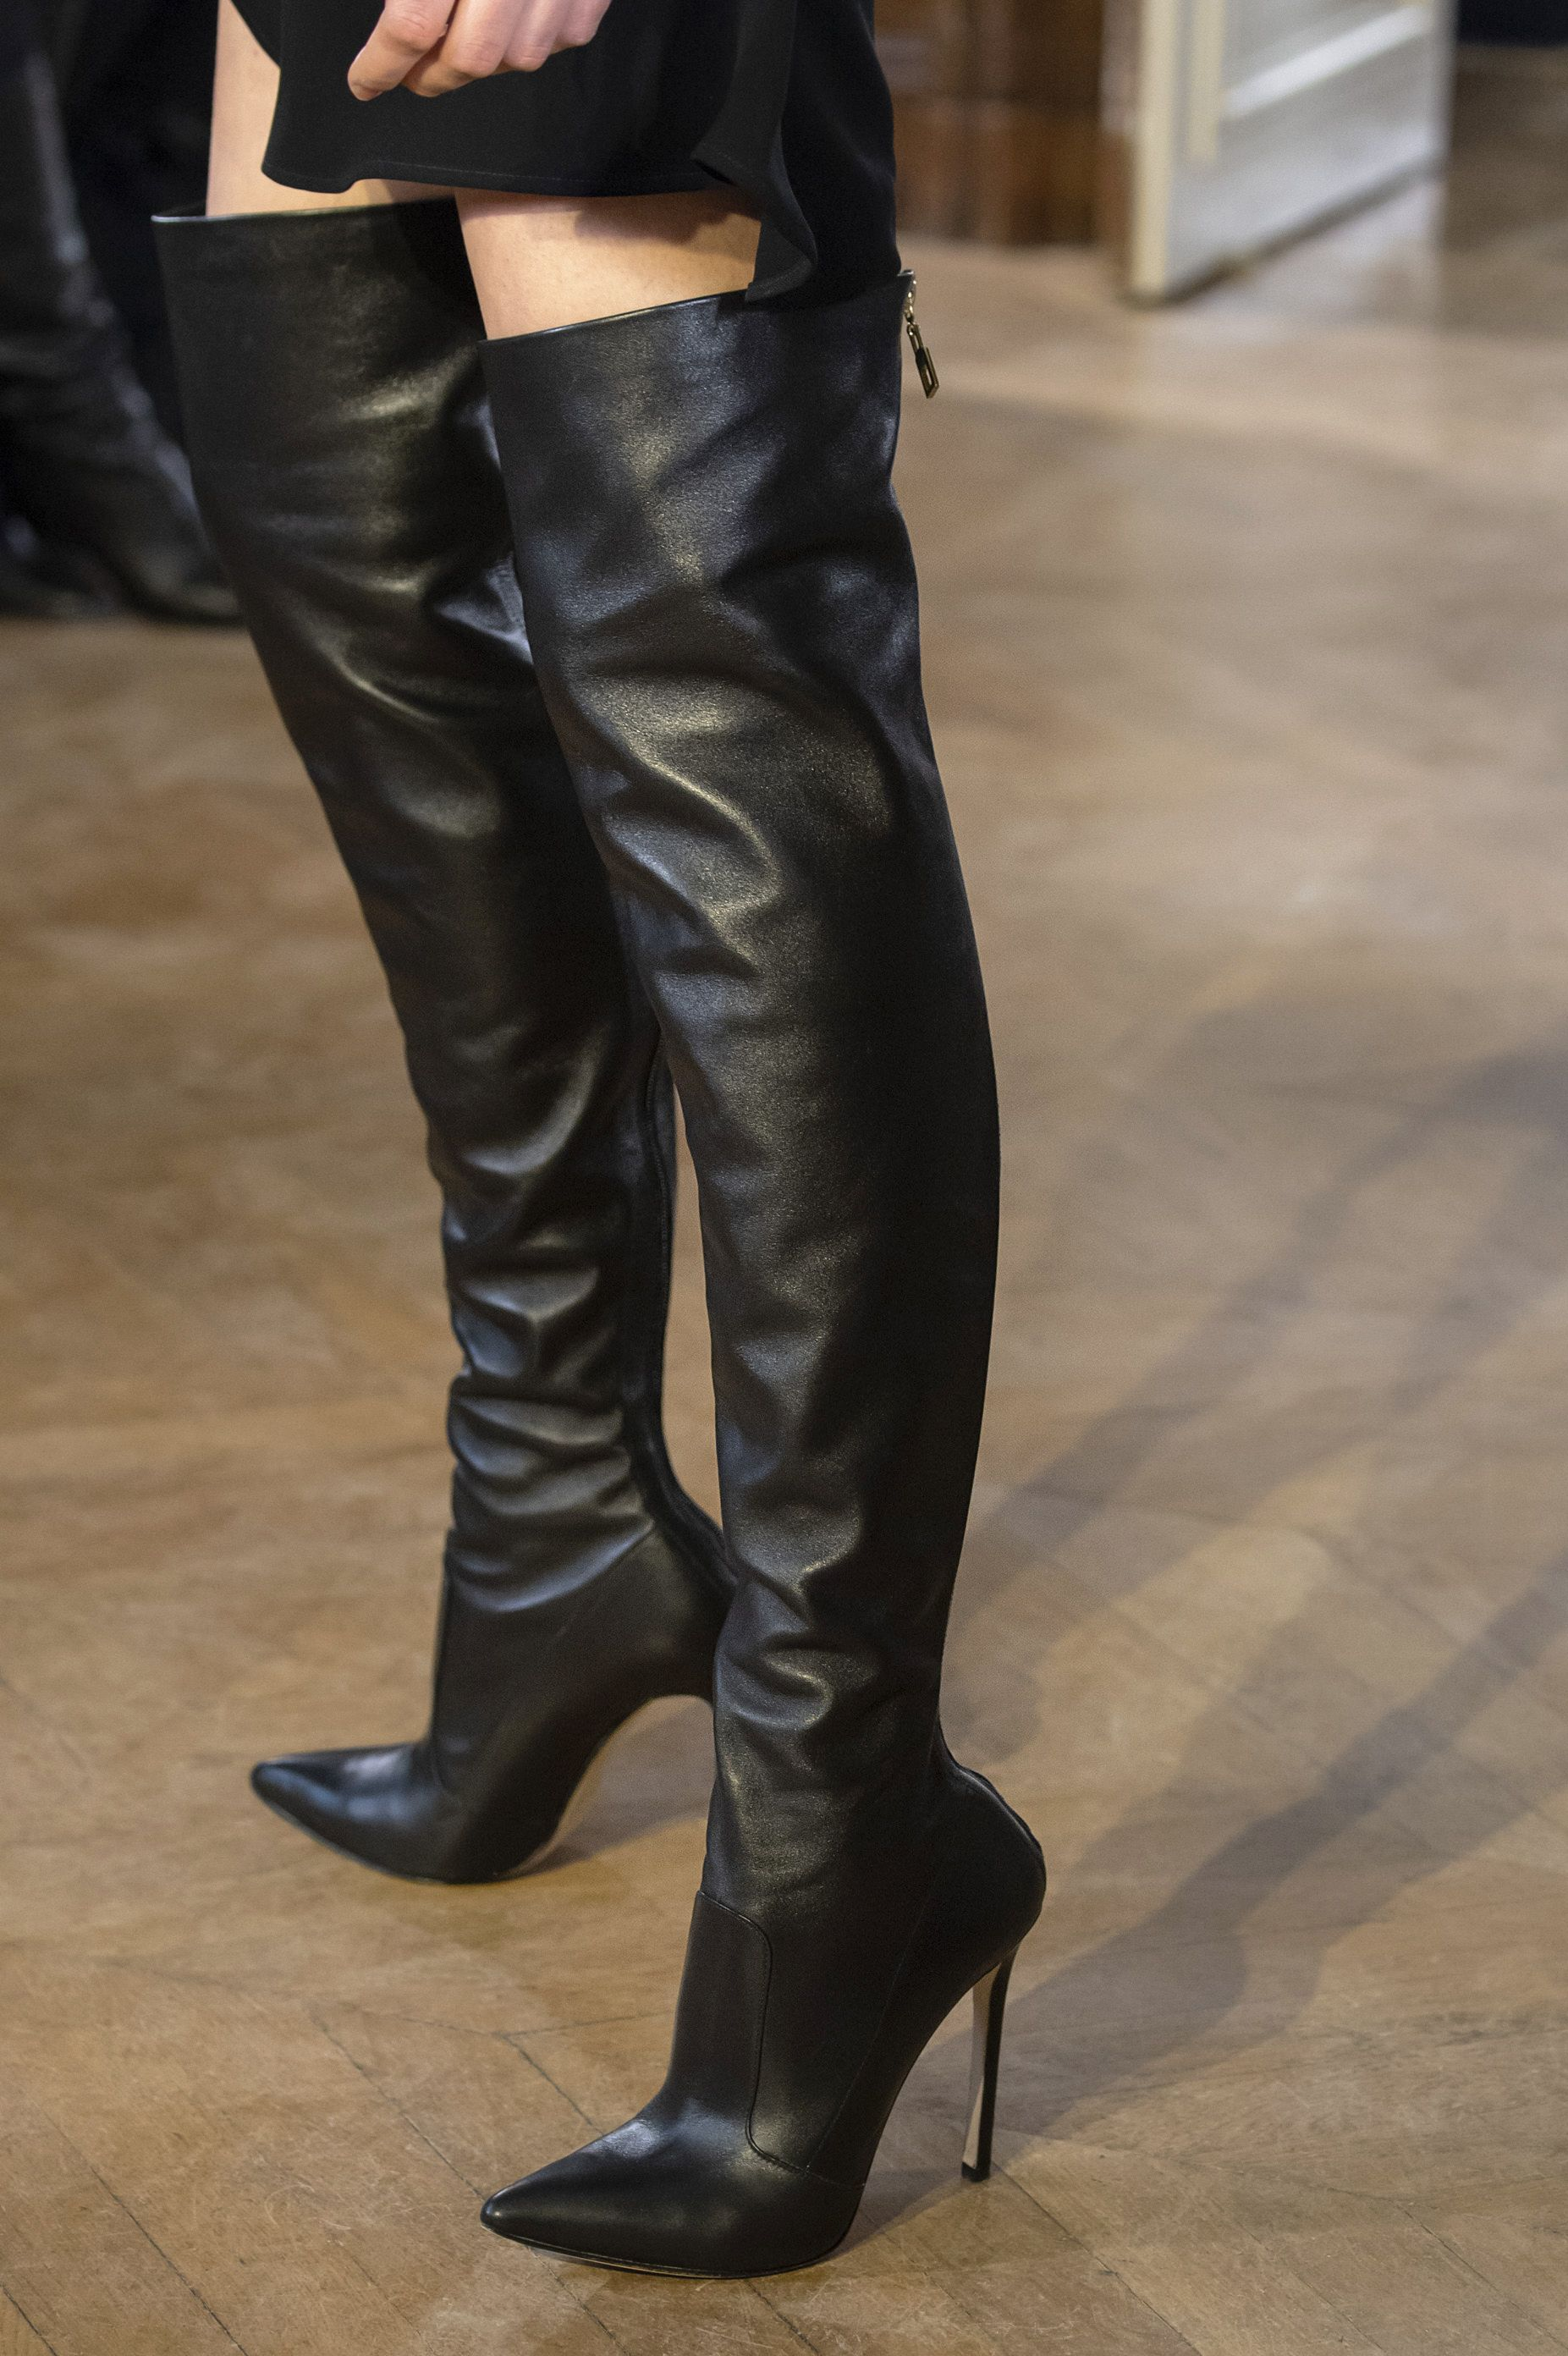 35a02adcf7a The shoes and boots you'll be wearing next winter – AW19 shoe and boot  trends